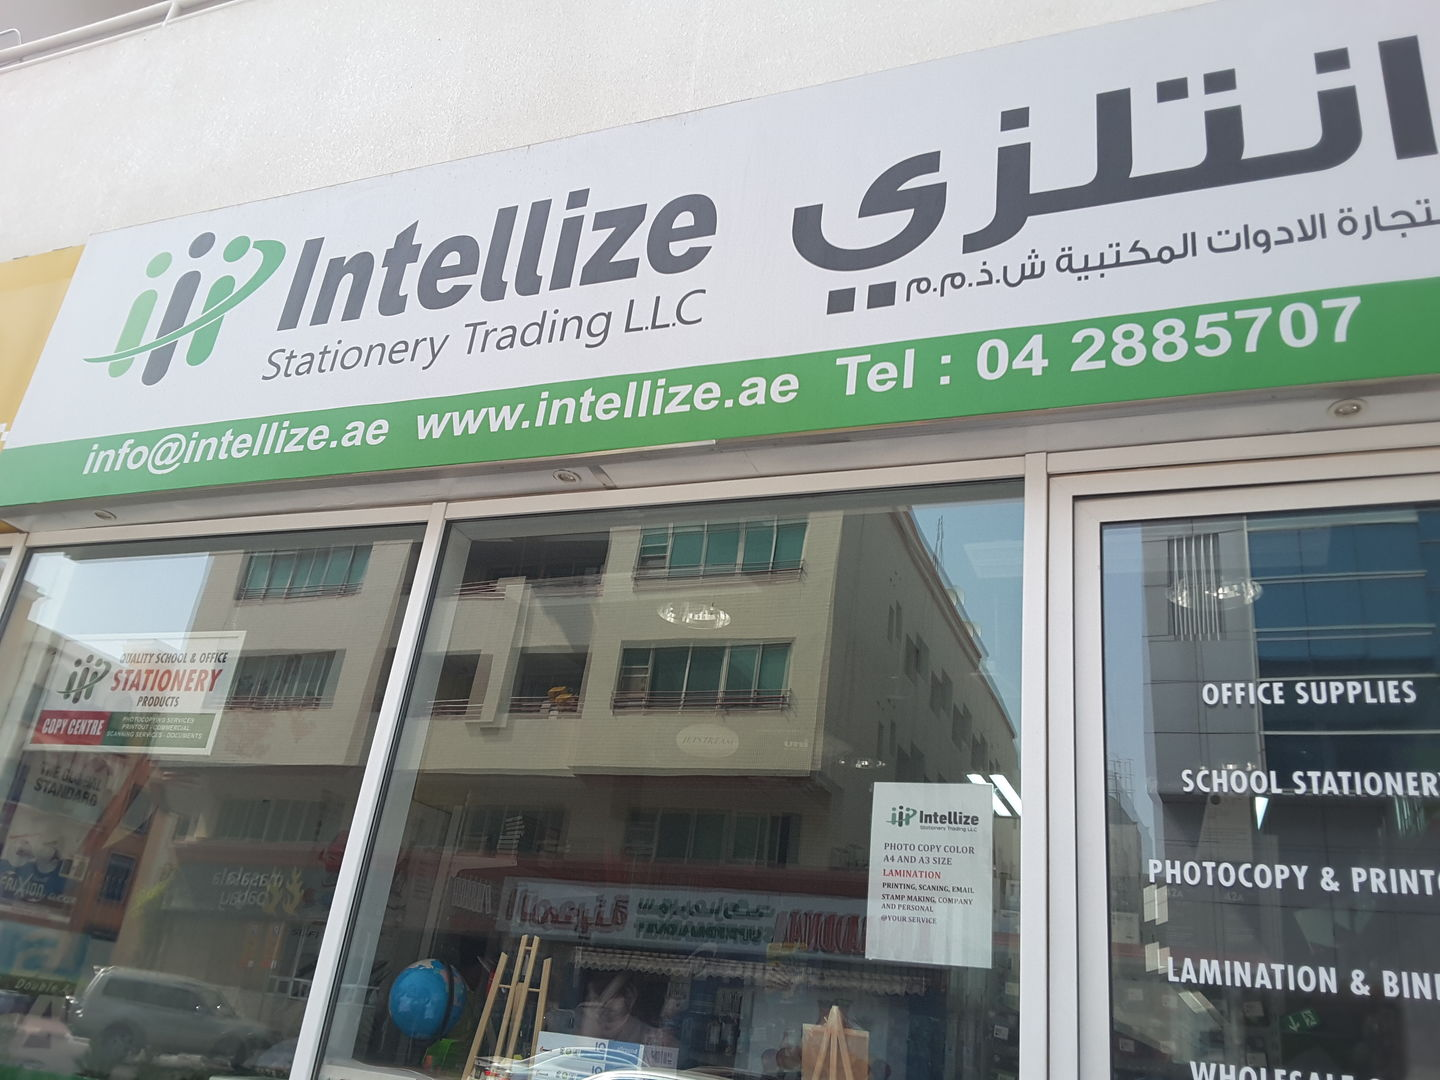 HiDubai-business-intellize-stationery-trading-shopping-office-supplies-stationery-al-karama-dubai-2